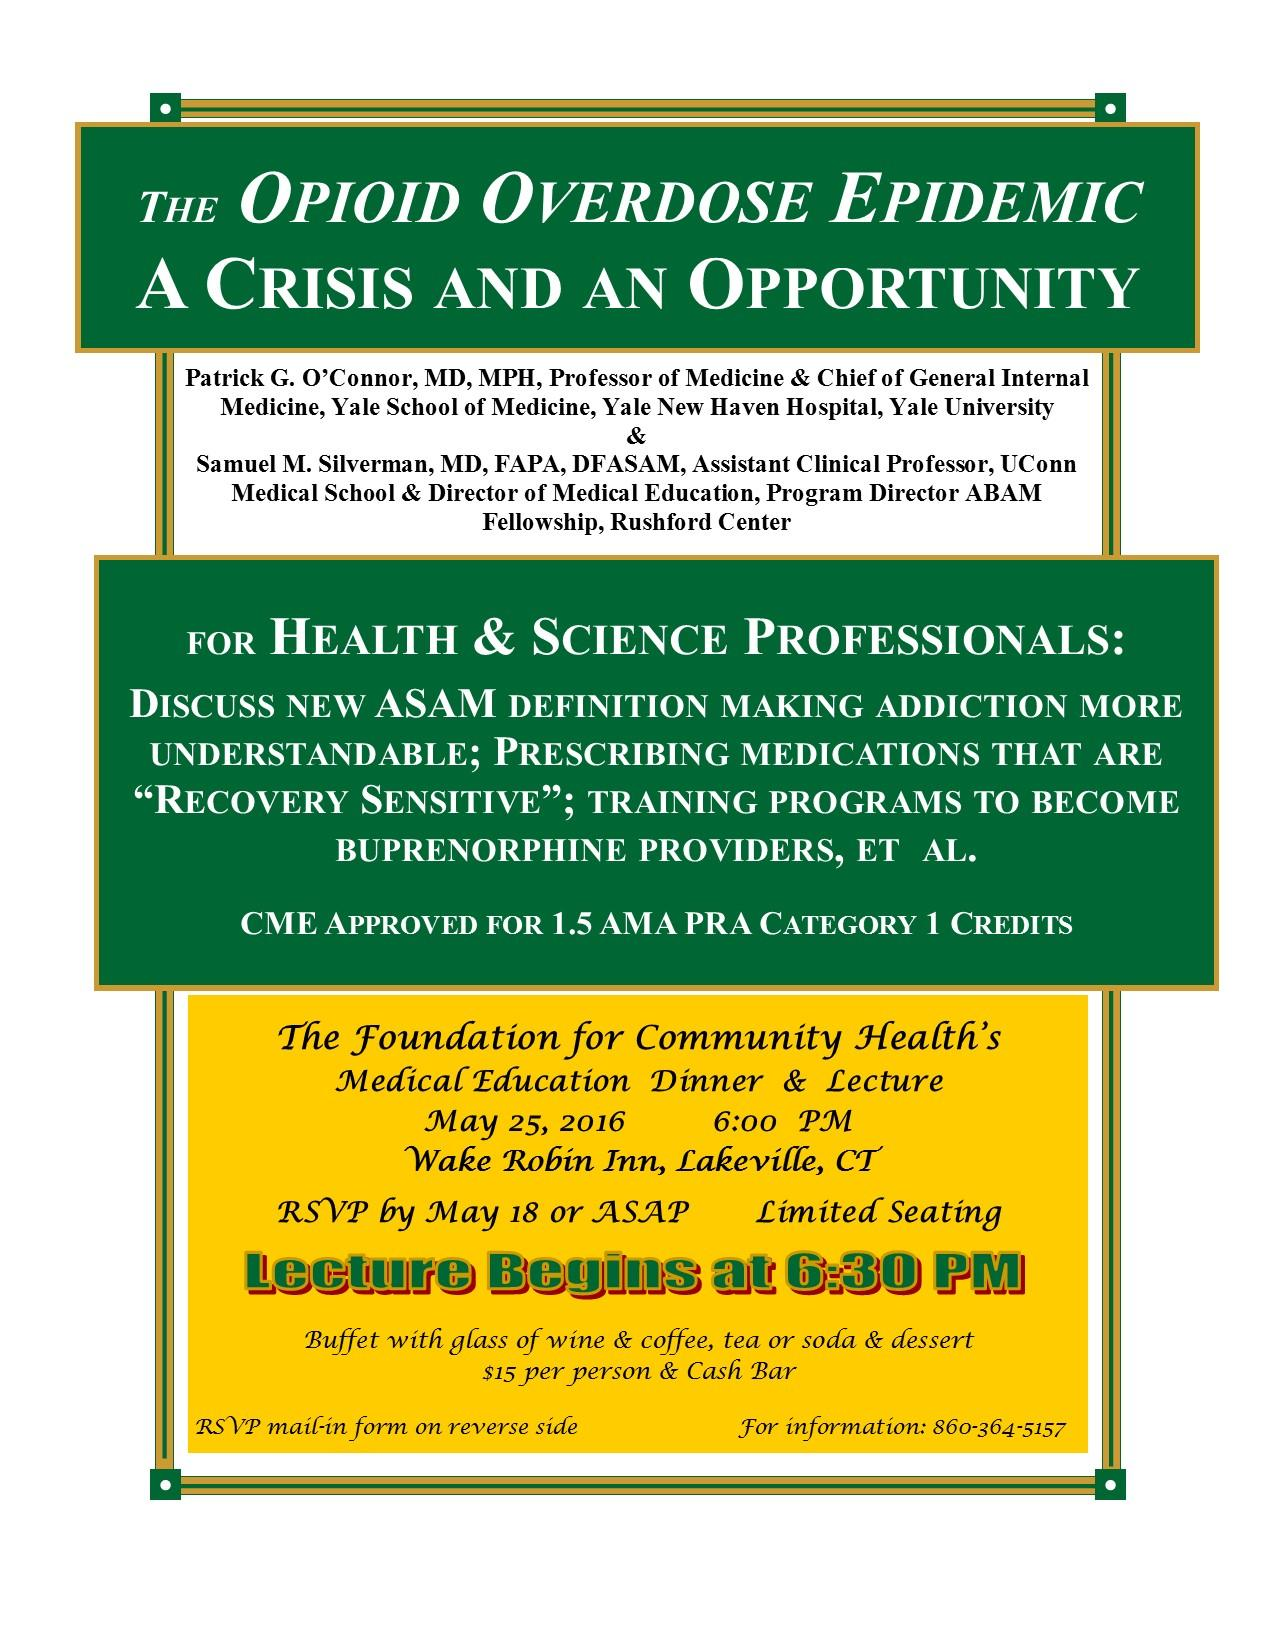 Medical Education Event Flyer